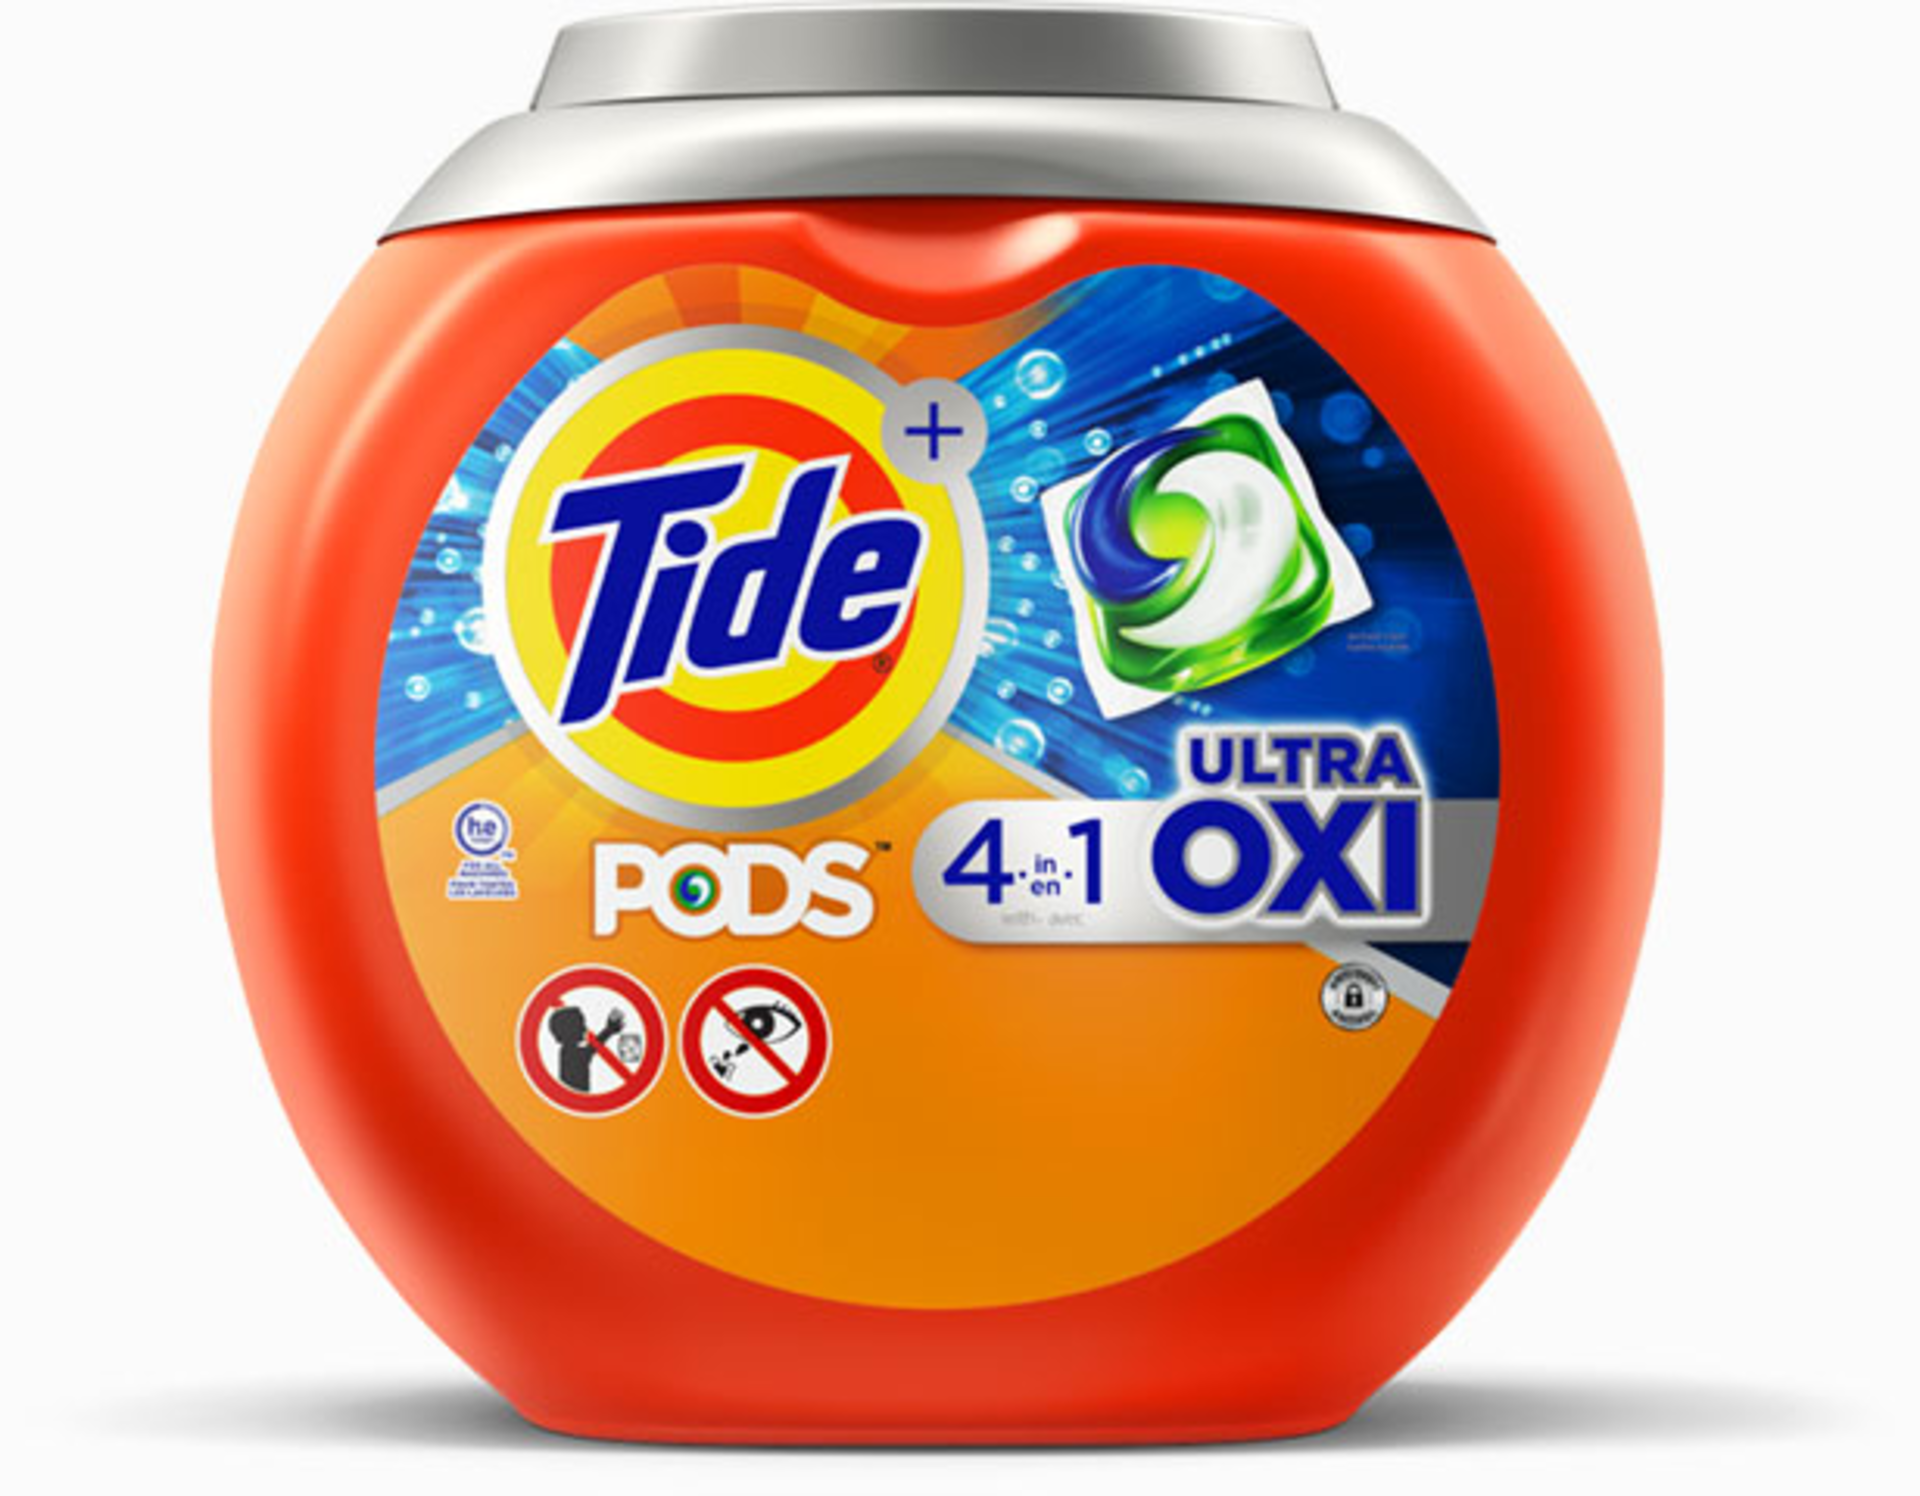 Tide PODS® Ultra OXI Laundry Detergent